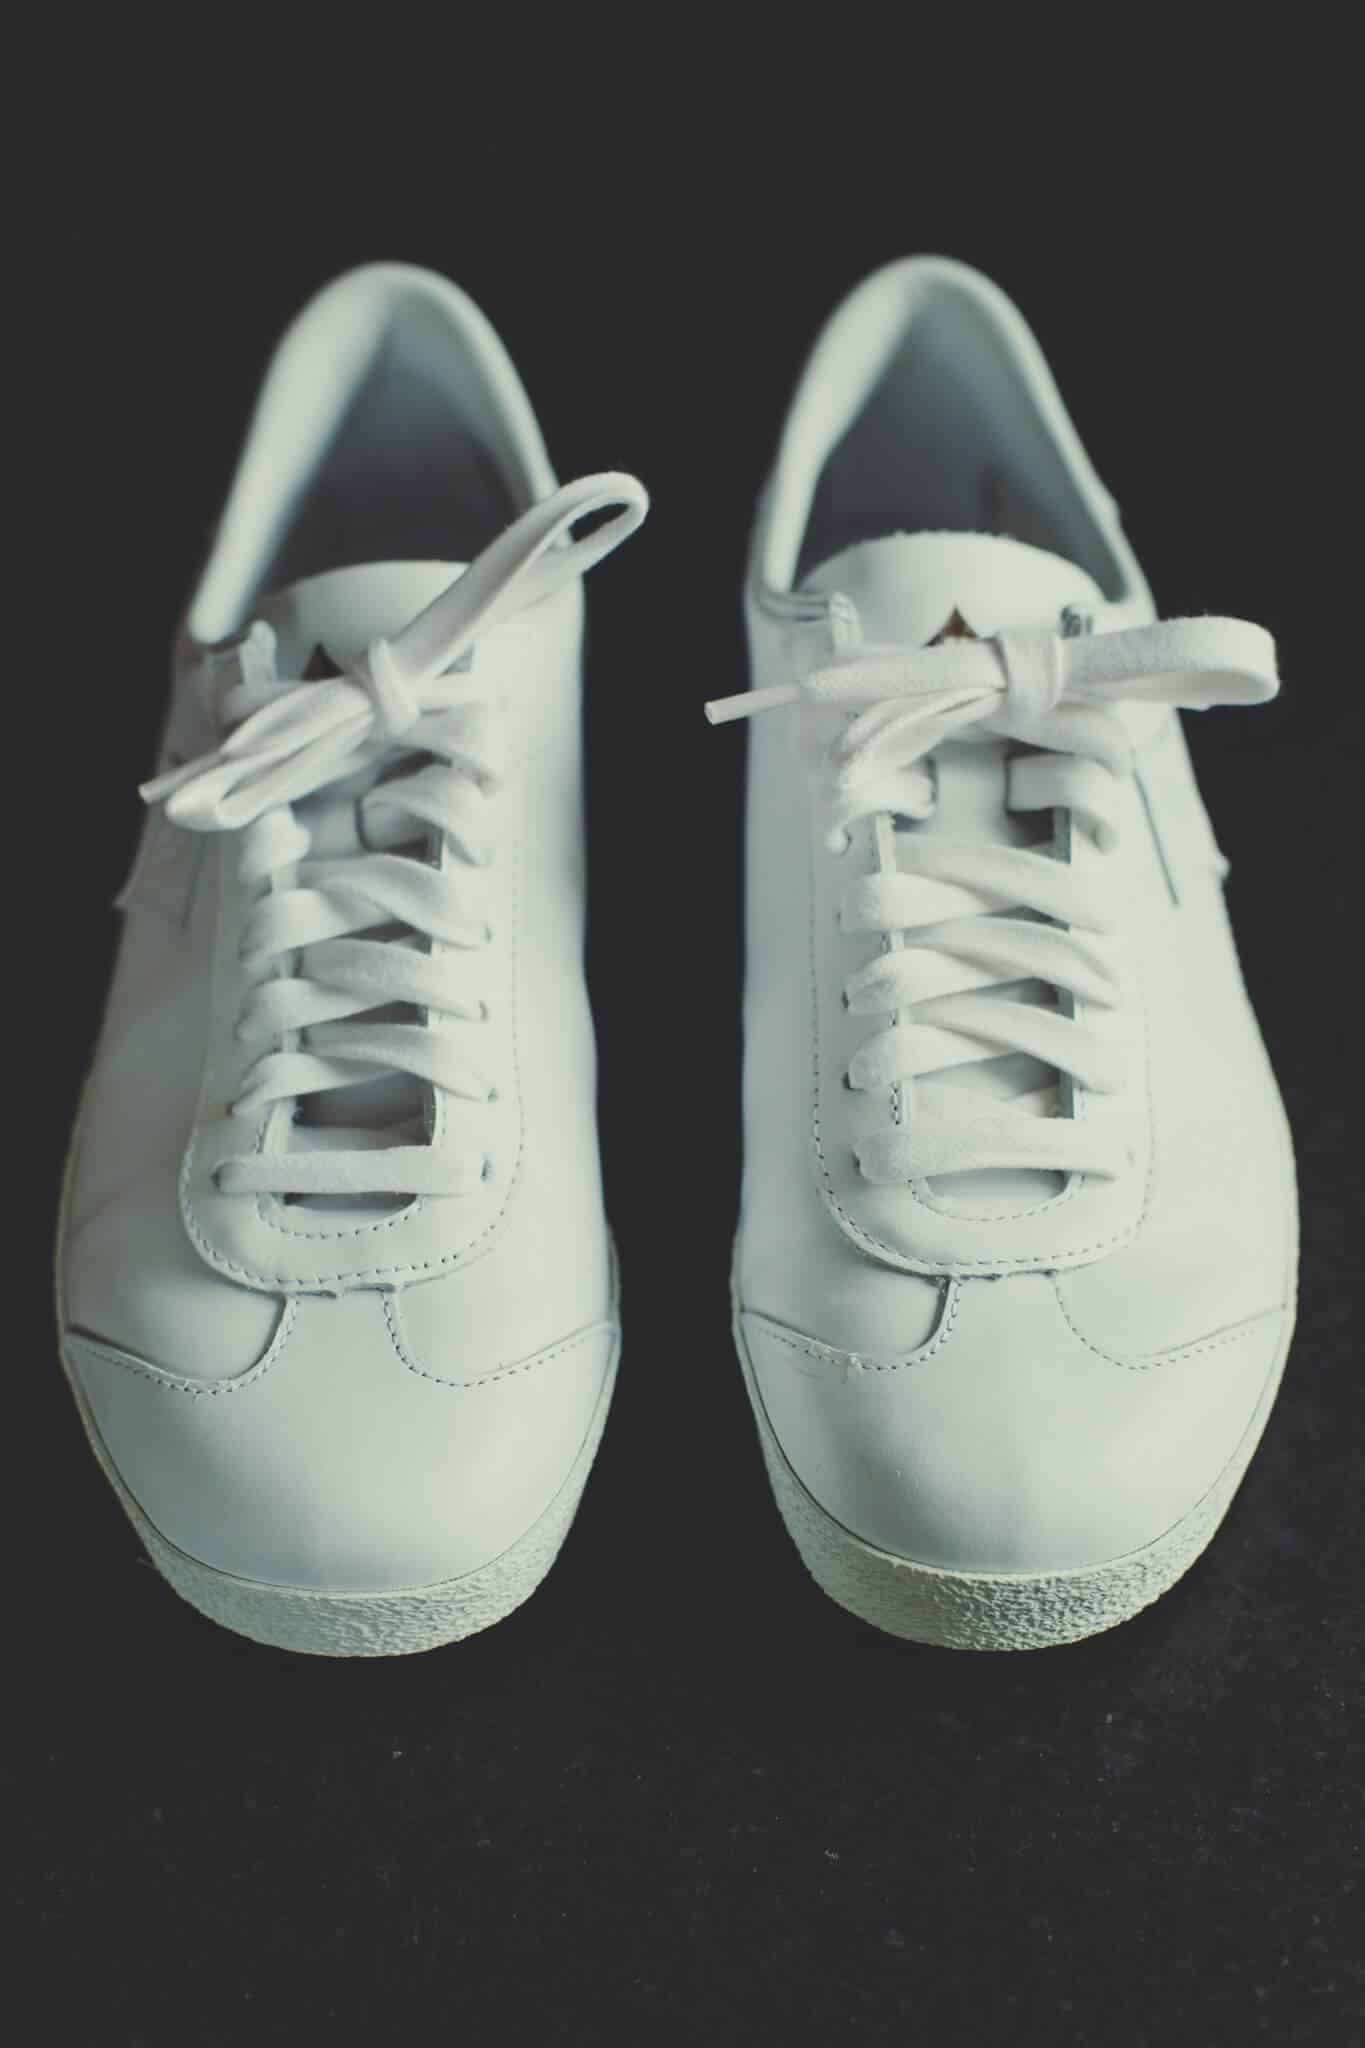 A Pair of White minimalist sneakers